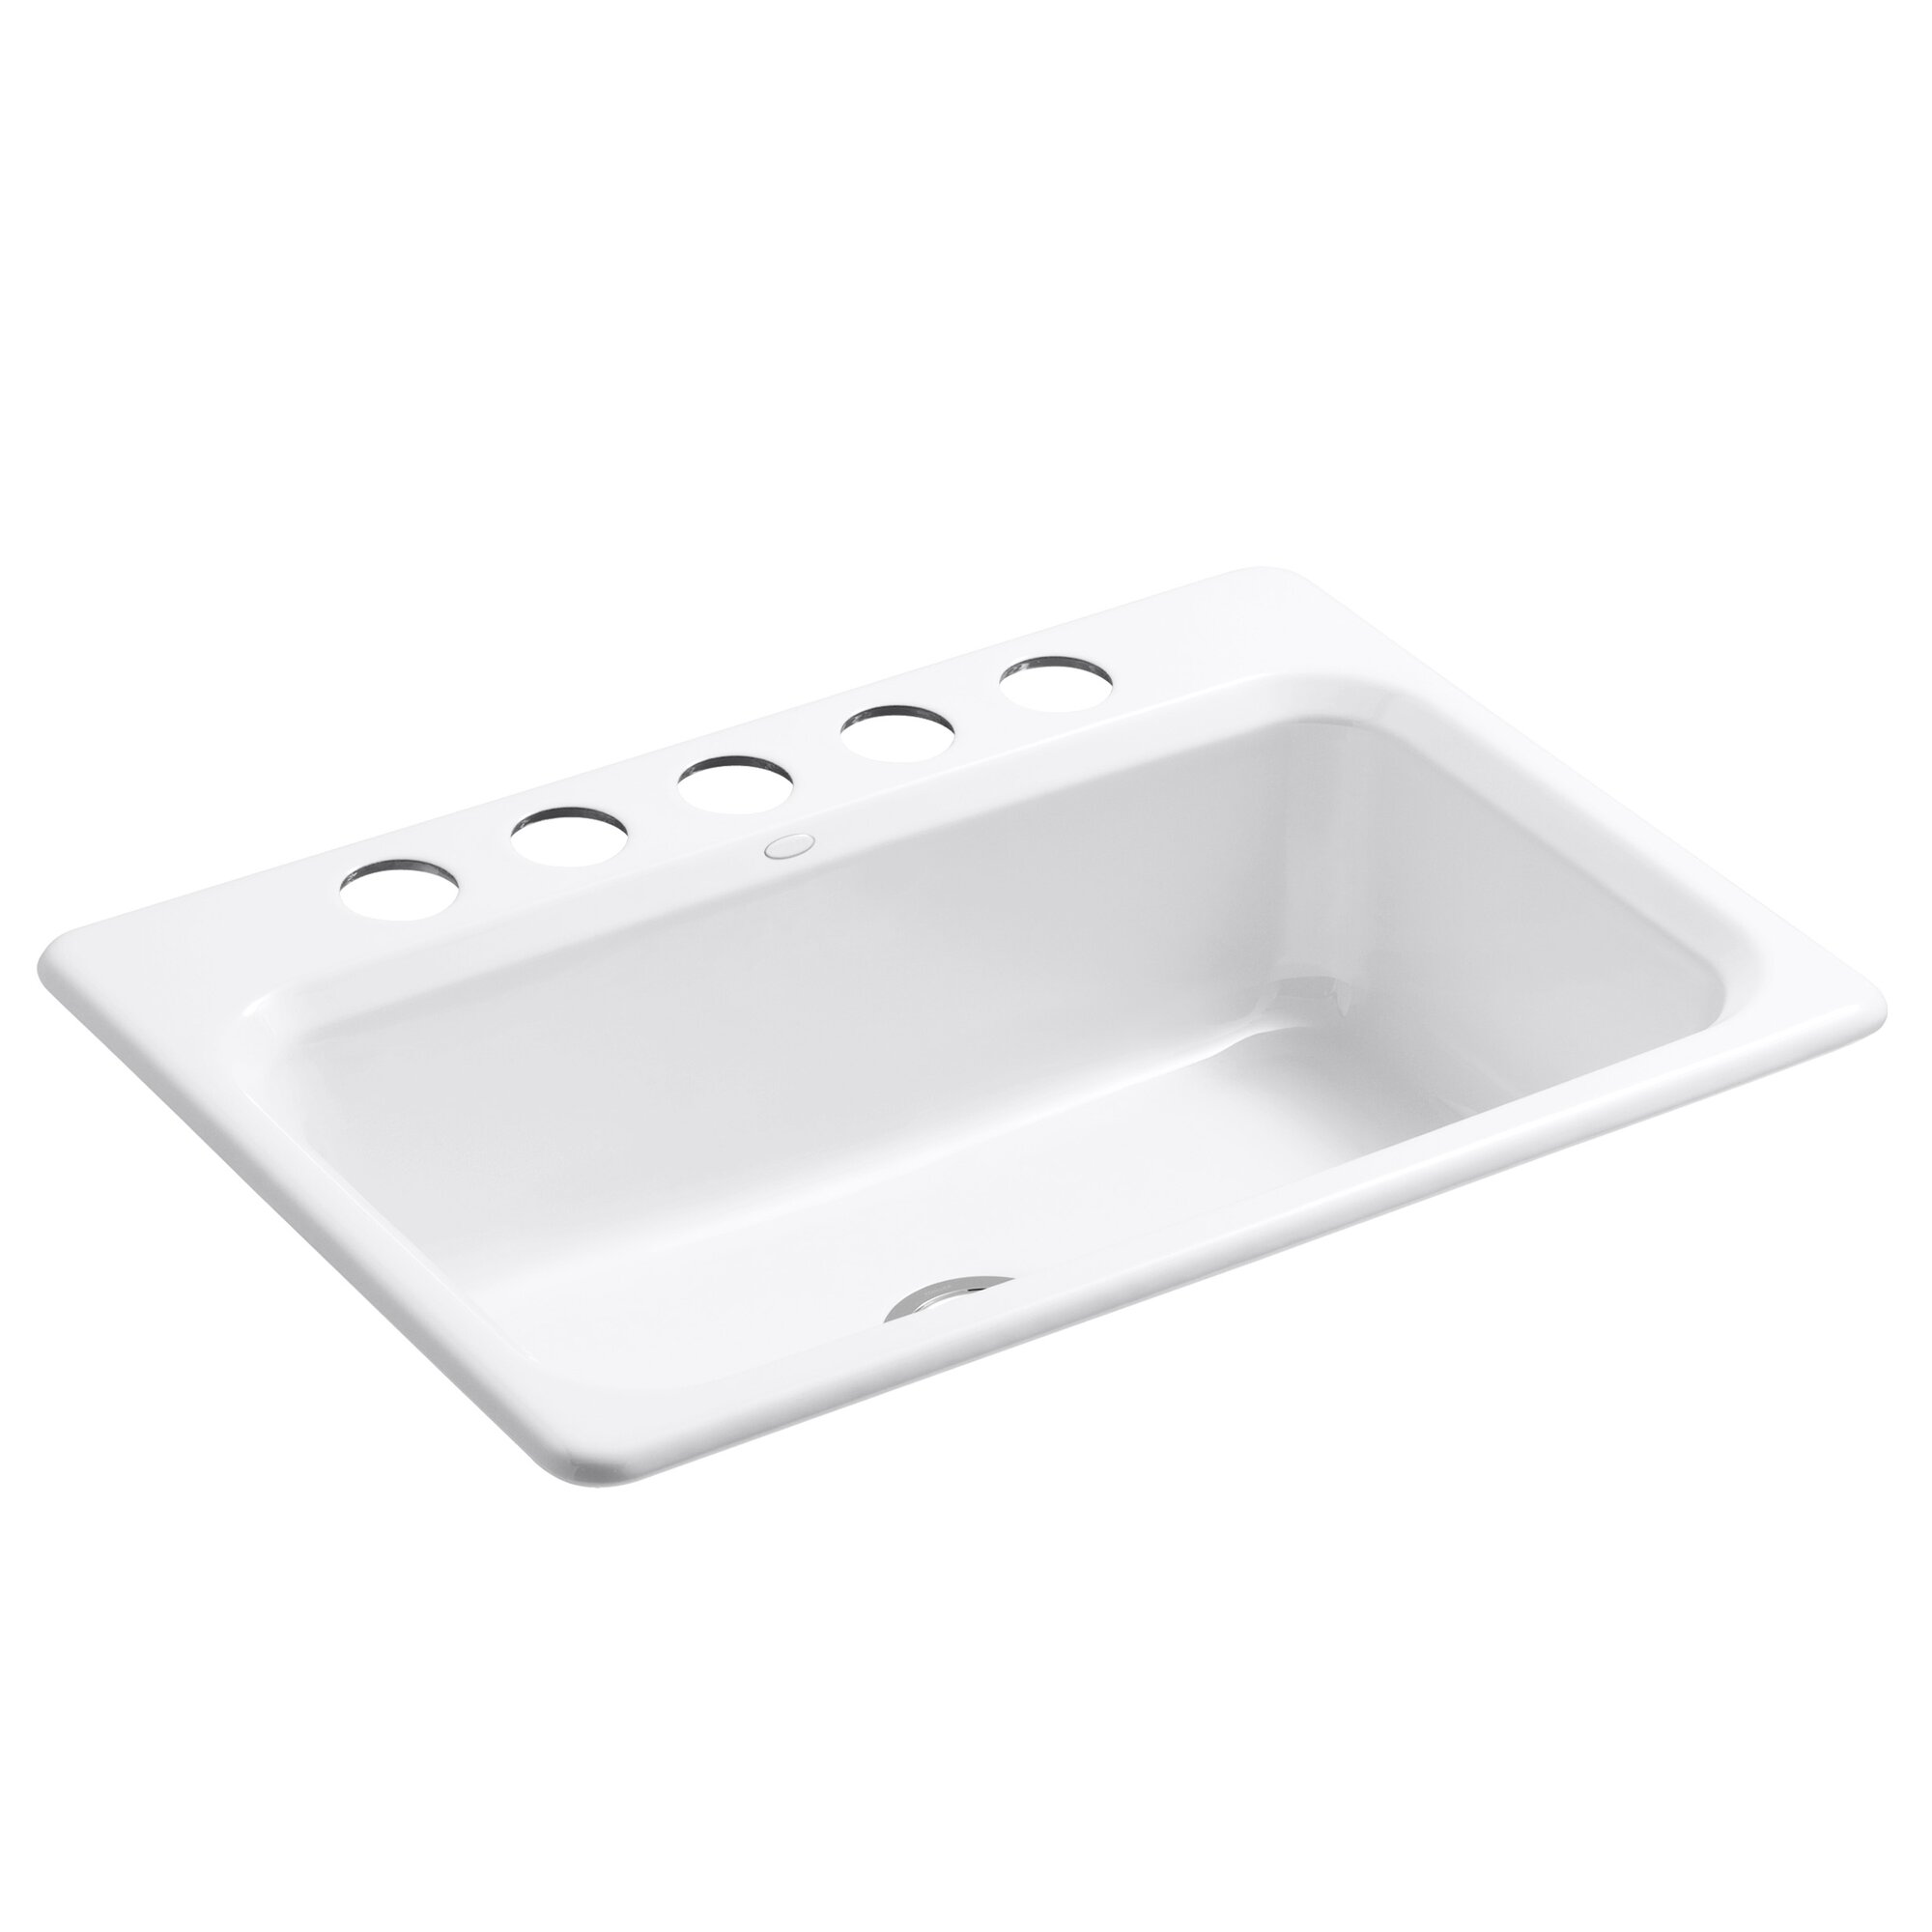 kohler bakersfield 31 x 22 x 8 58 under mount single bowl kitchen sink with 5 faucet holes reviews wayfair - White Single Basin Kitchen Sink